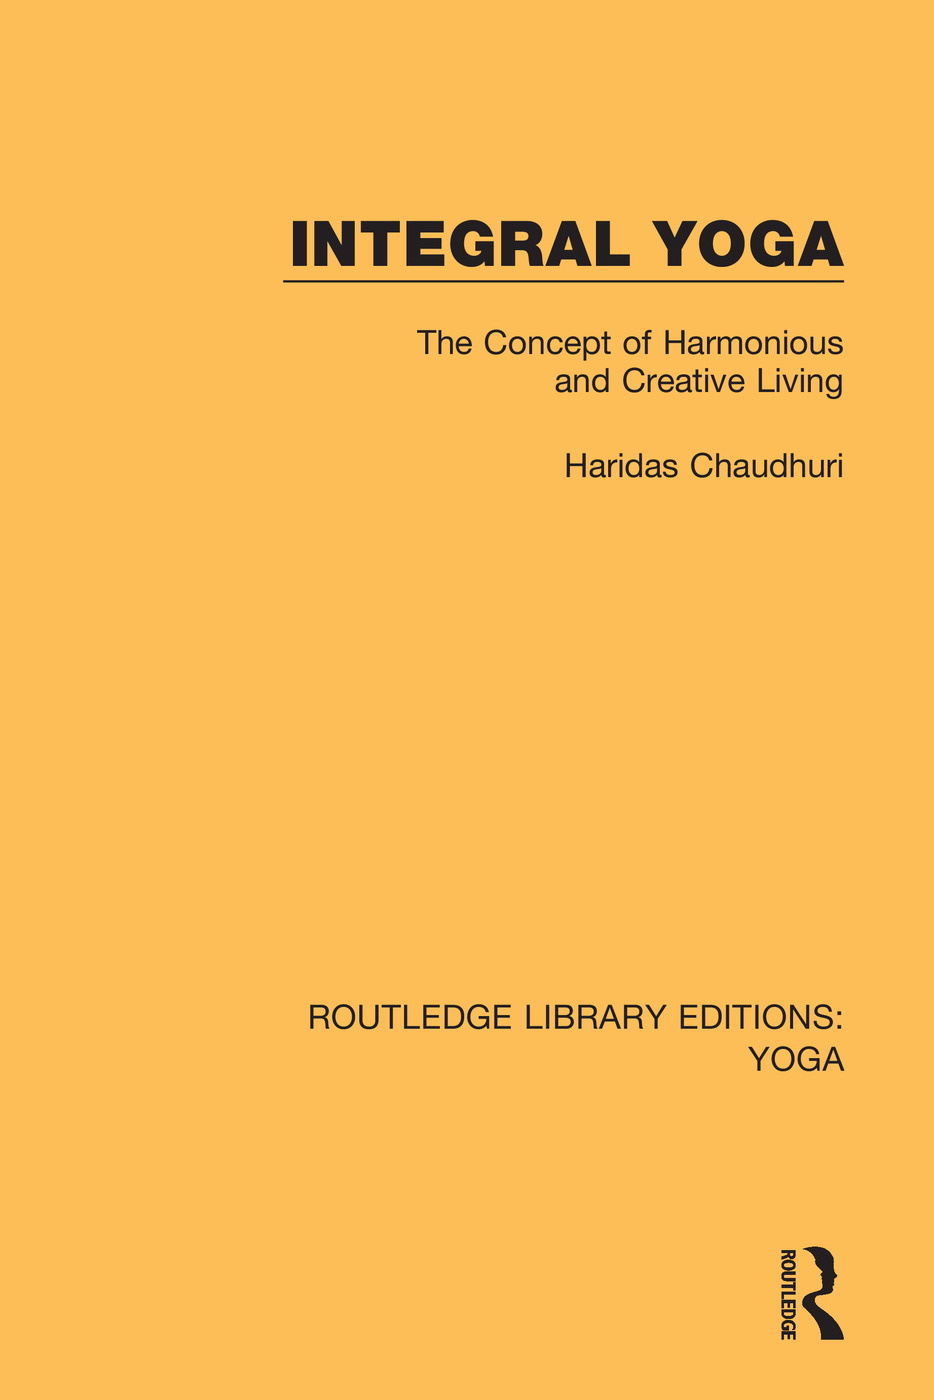 Integral Yoga: The Concept of Harmonious and Creative Living book cover